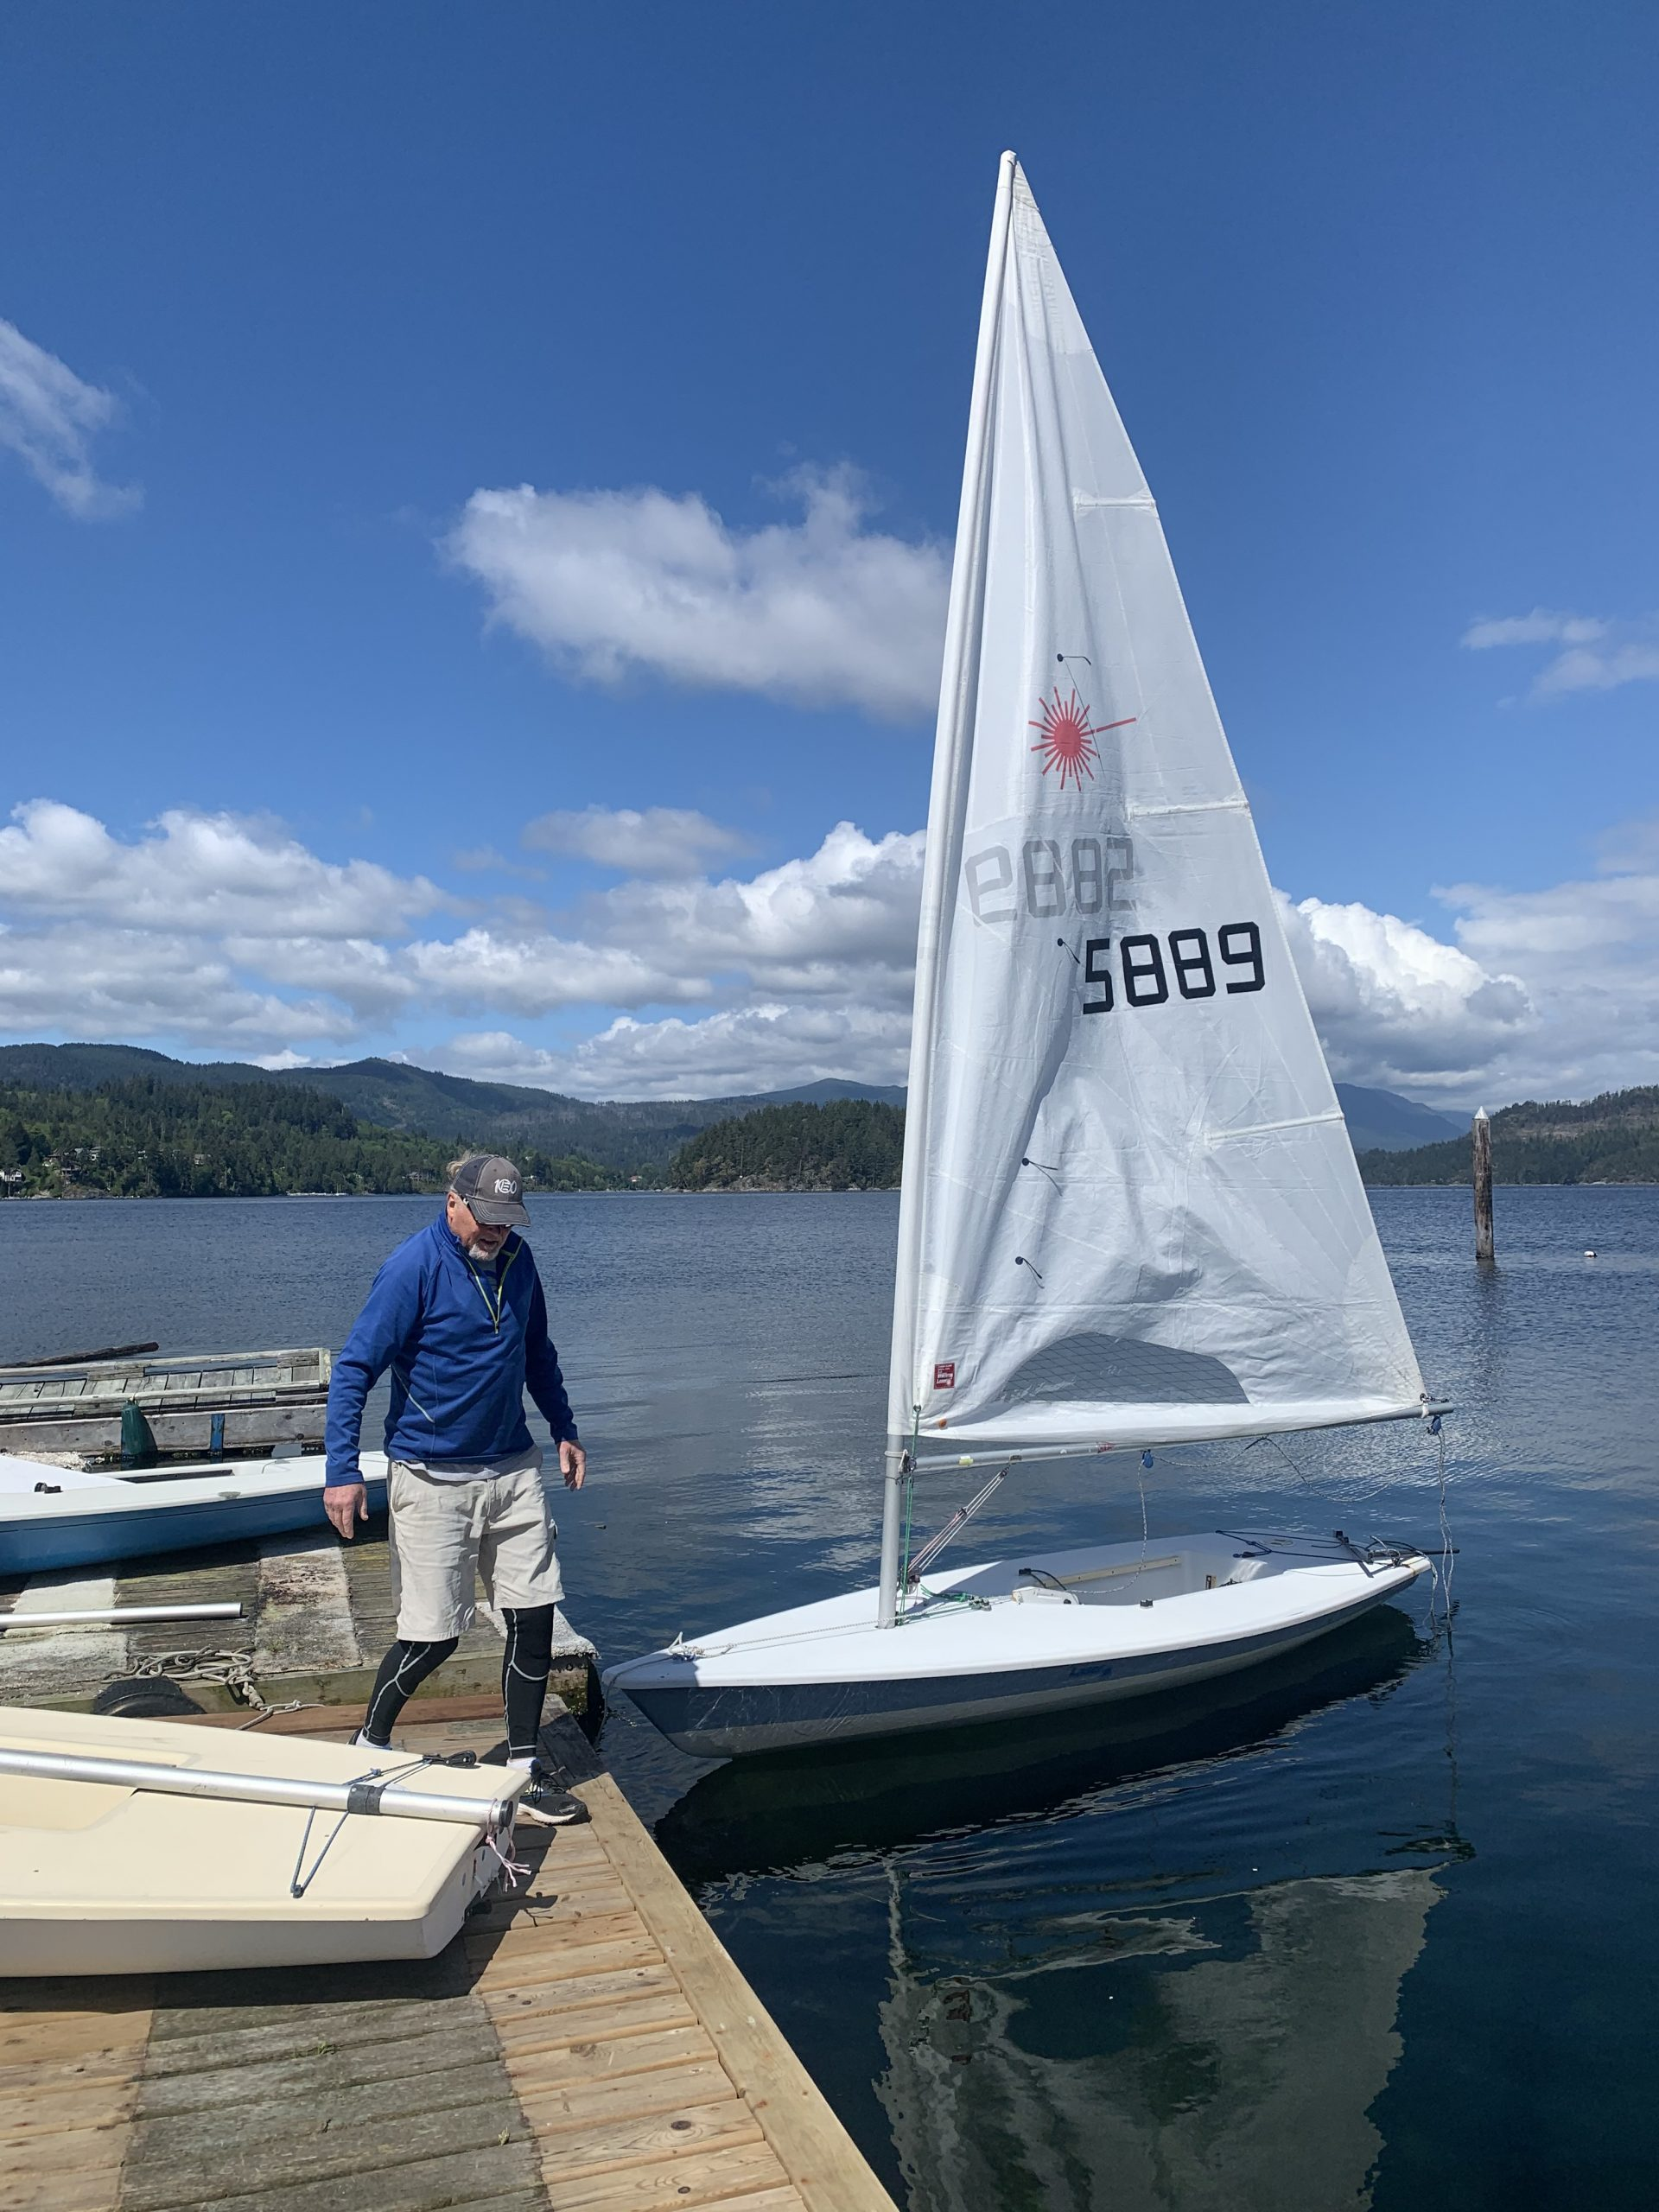 Thomas getting his boat rigged up for an afternoon of sailing